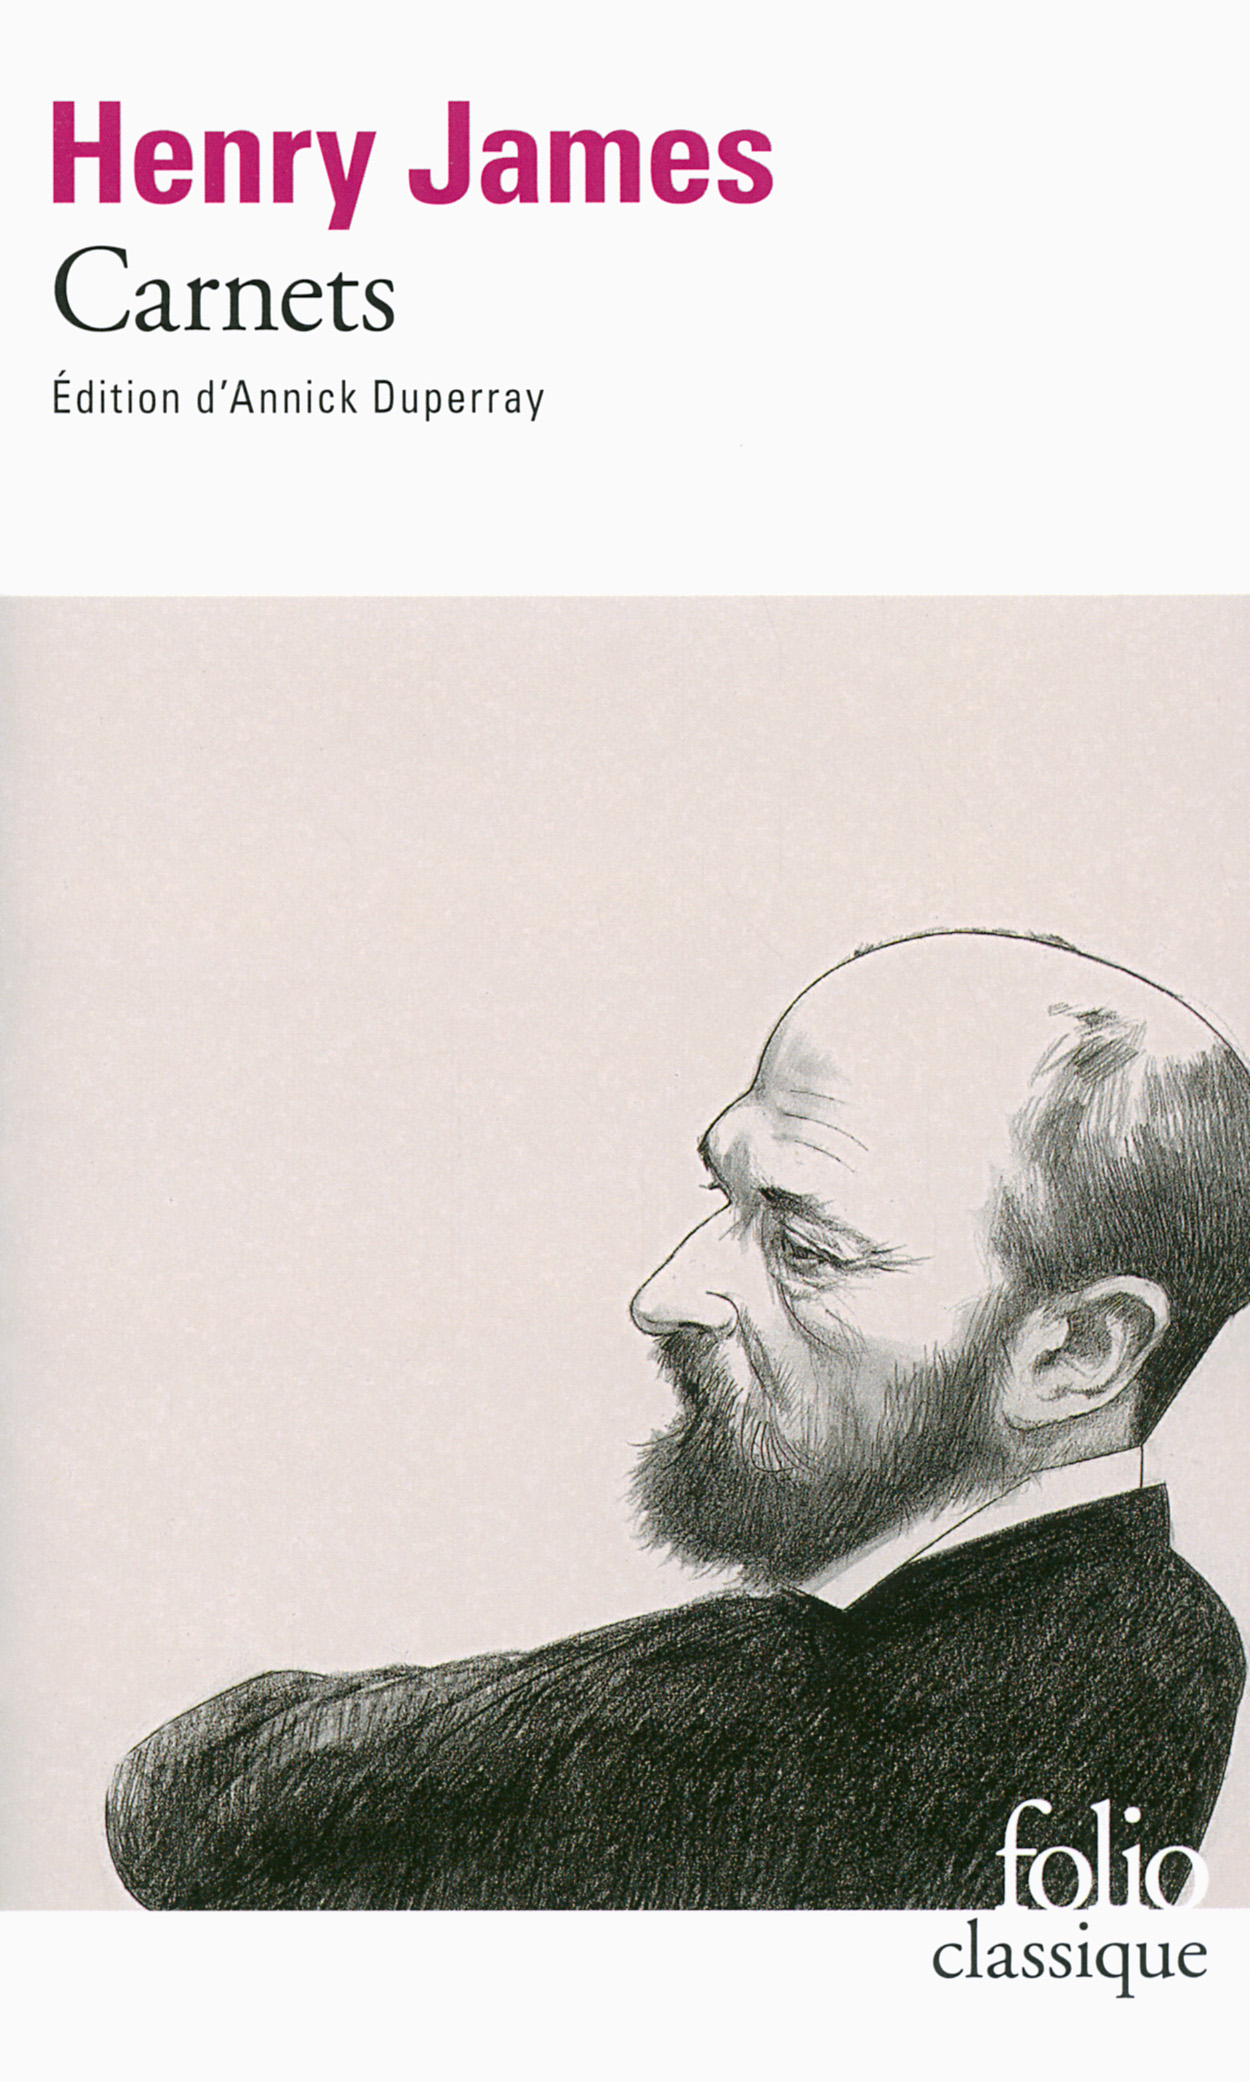 henry james the art of fiction essay Ray carney highly recommends the following essay by henry james, the art of fiction, to all artists the art of fiction by henry james art lives upon.